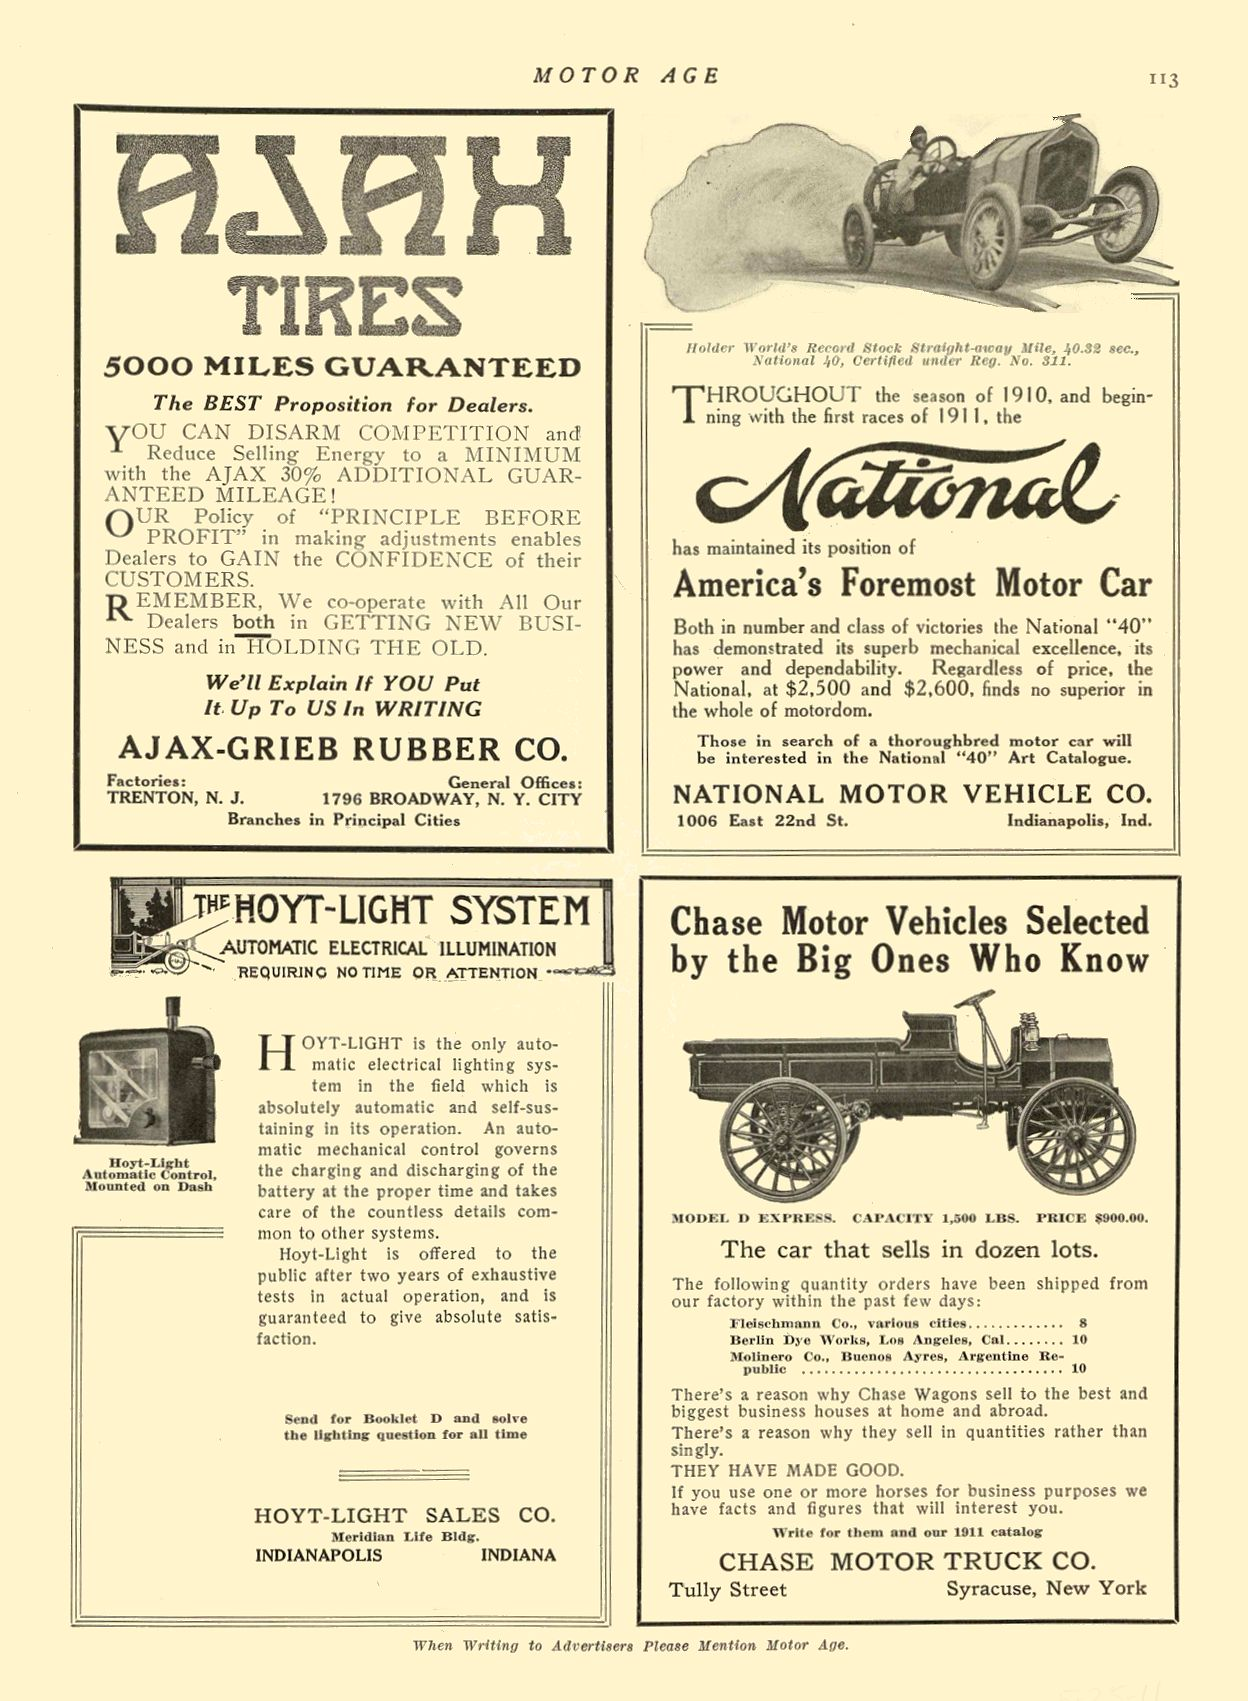 1911 5 25 NATIONAL National America's Foremost Motor Car NATIONAL MOTOR VEHICLE CO. Indianapolis, IND MOTOR AGE May 25, 1911 8.5″x12″ page 113